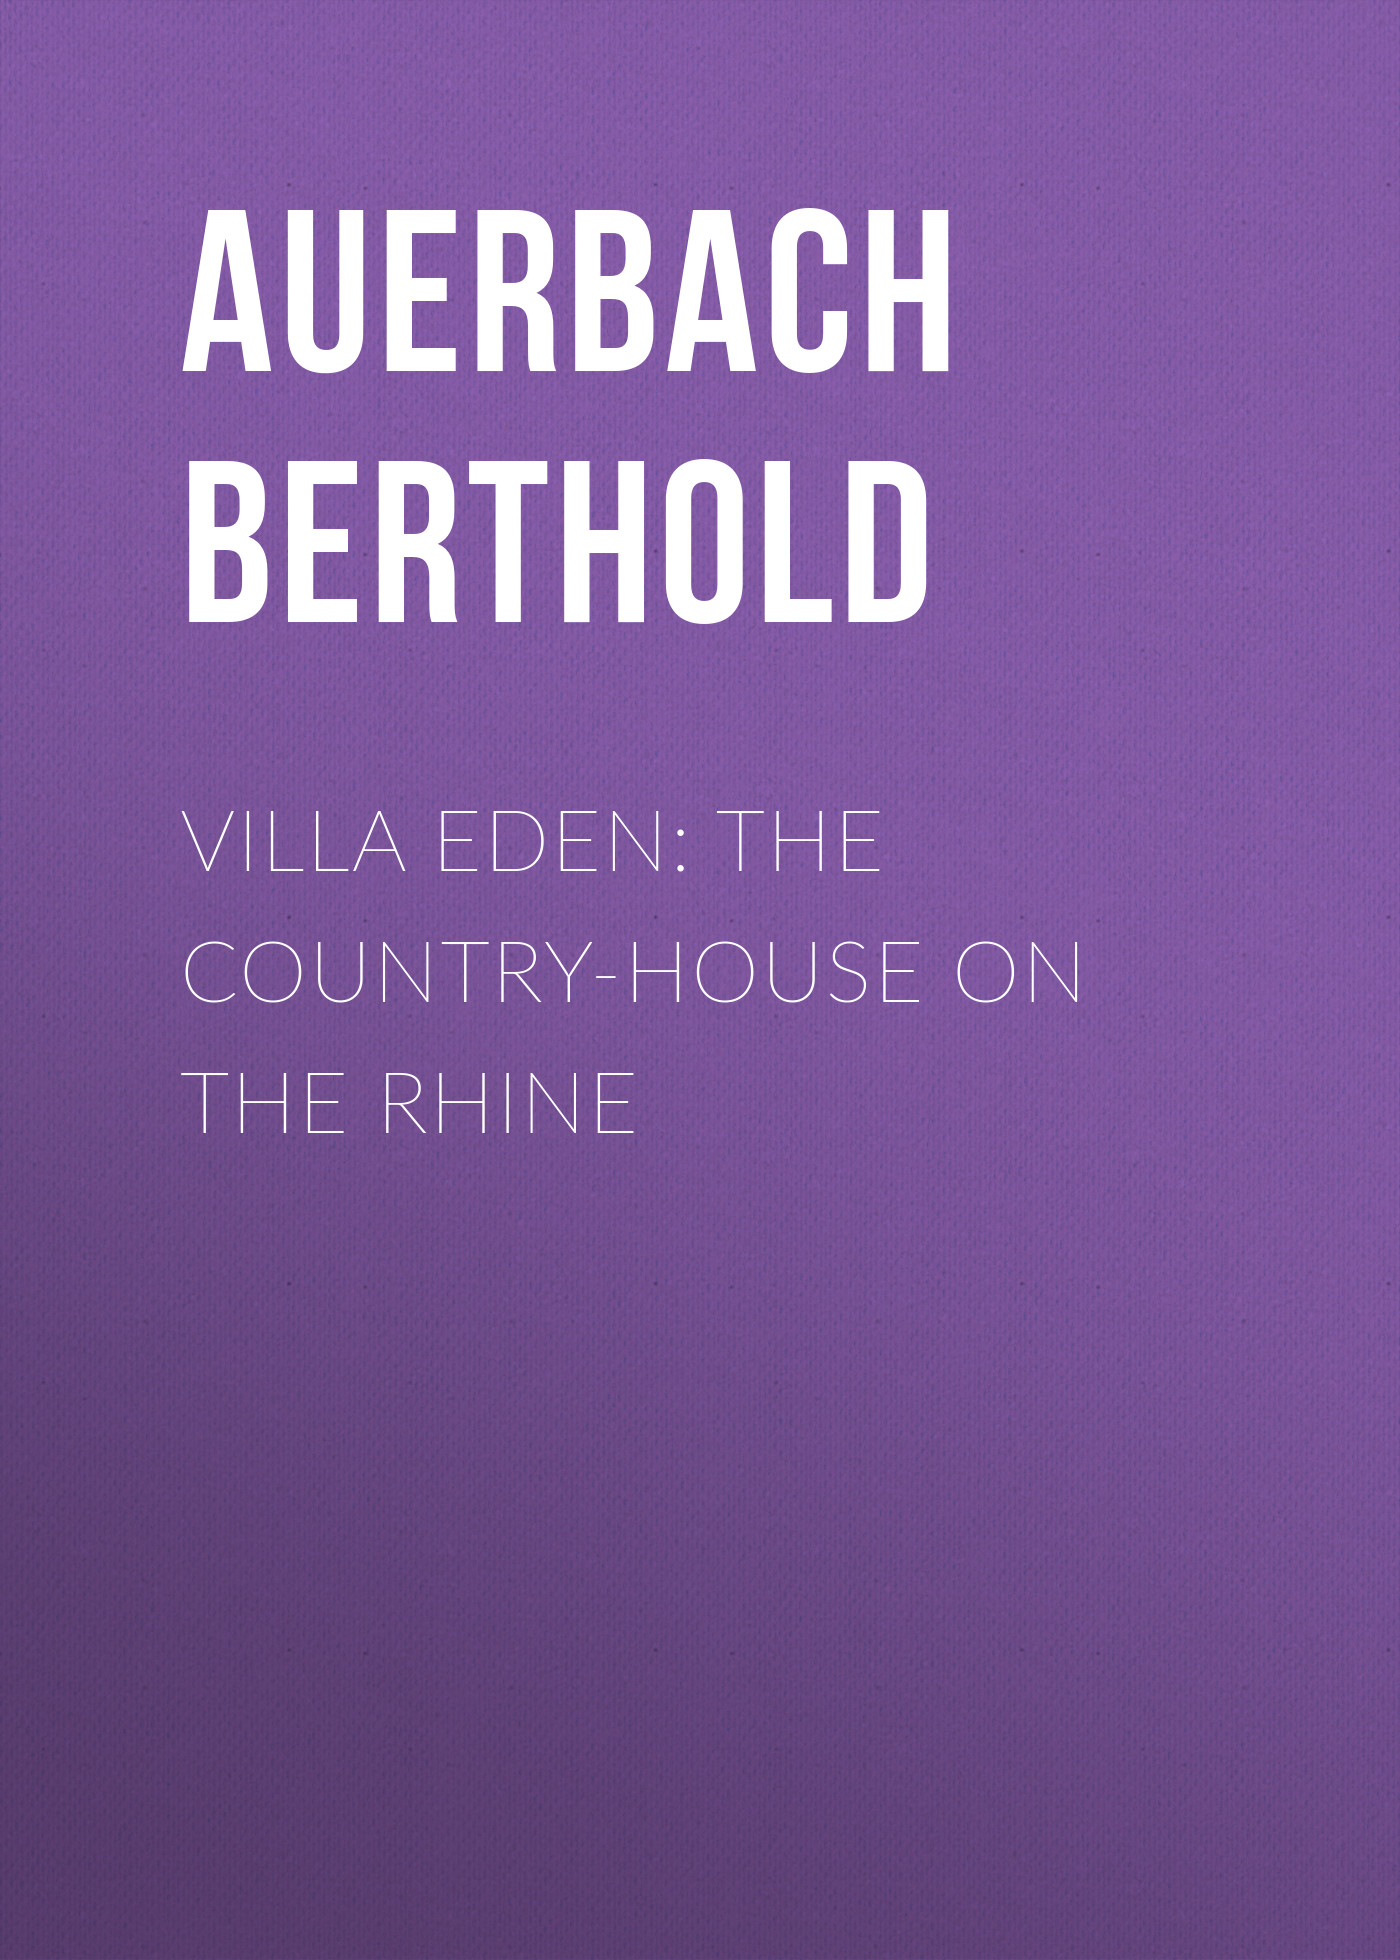 Auerbach Berthold Villa Eden: The Country-House on the Rhine